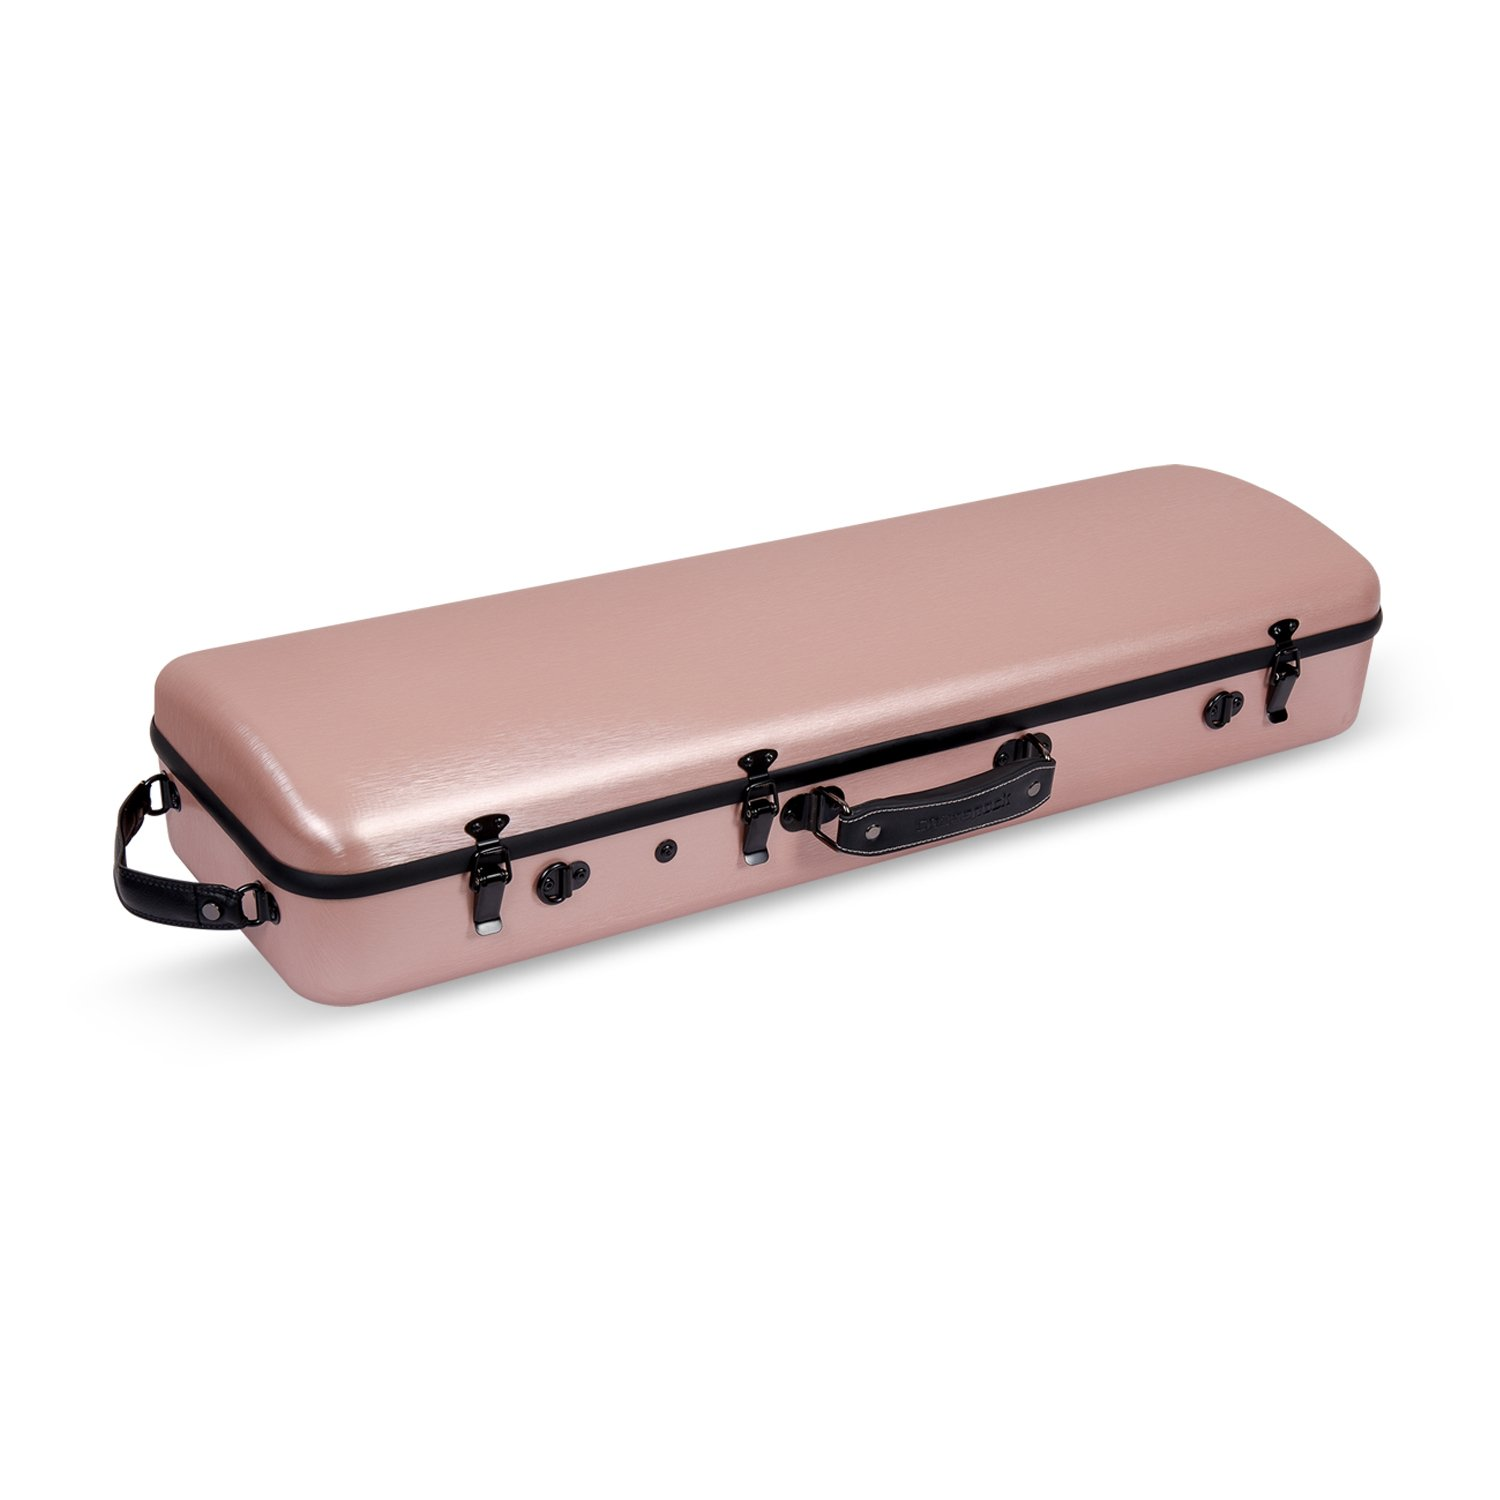 Crossrock Oblong Violin Case, Strong Poly Carbon Composite,Fit for 4/4 Full Size Violin,Rose Gold